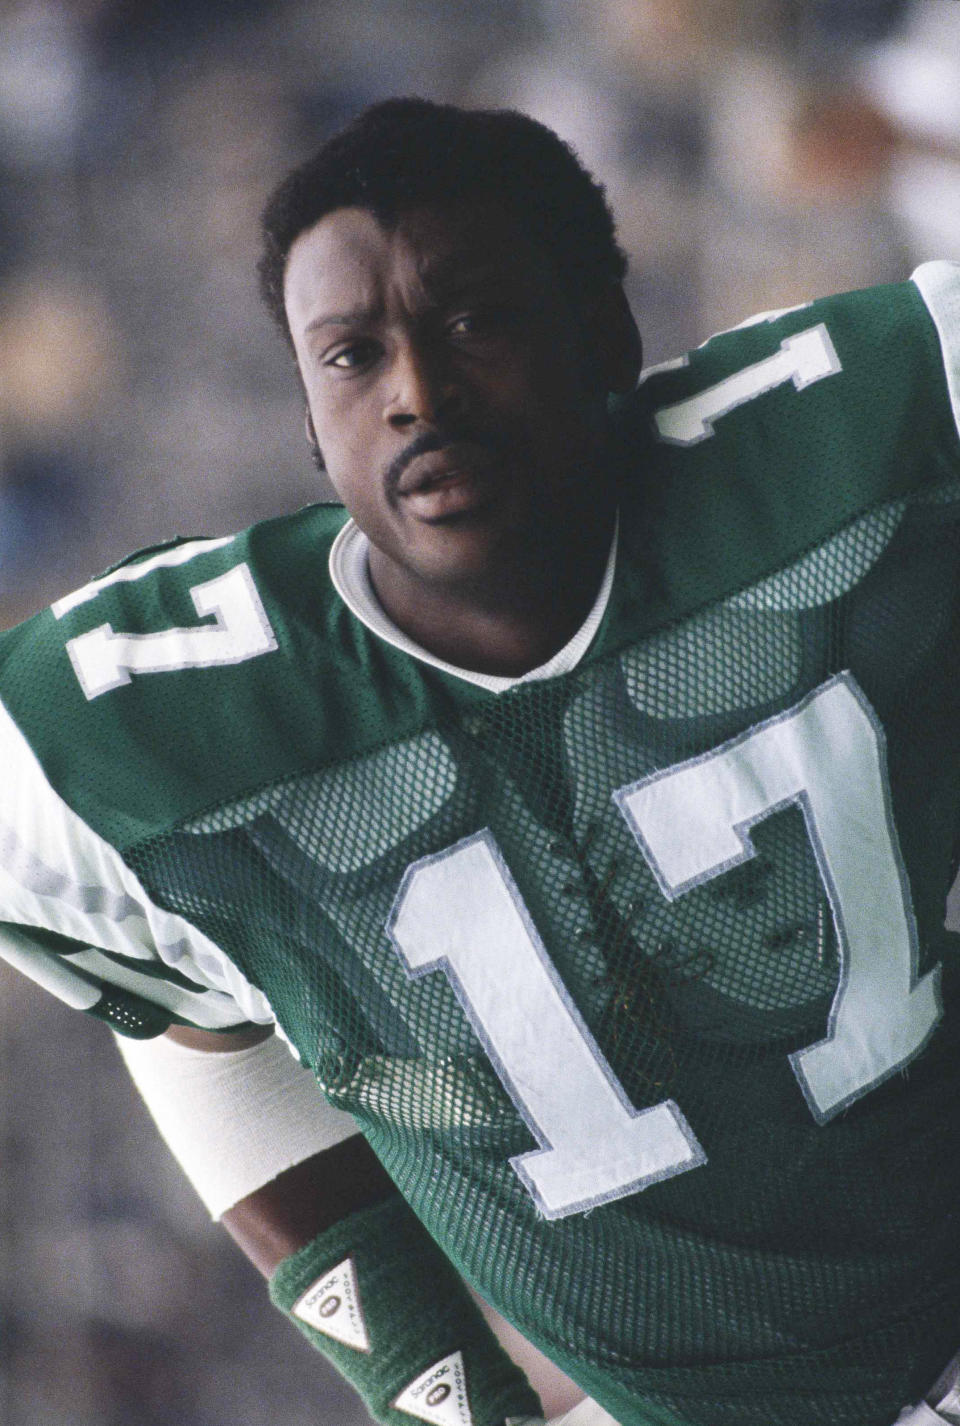 """FILE - In this Dec. 14, 1980, file photo, Philadelphia Eagles' Harold Carmichael stands during the team's NFL football game against the St. Louis Cardinals in Philadelphia. Next month, Carmichael will use those longs arms to put on his gold jacket in Canton. """"To be inducted, to get that gold jacket, and get that bust and get that ring is very exciting for me,"""" he said. (AP Photo/Clem Murray, File)"""